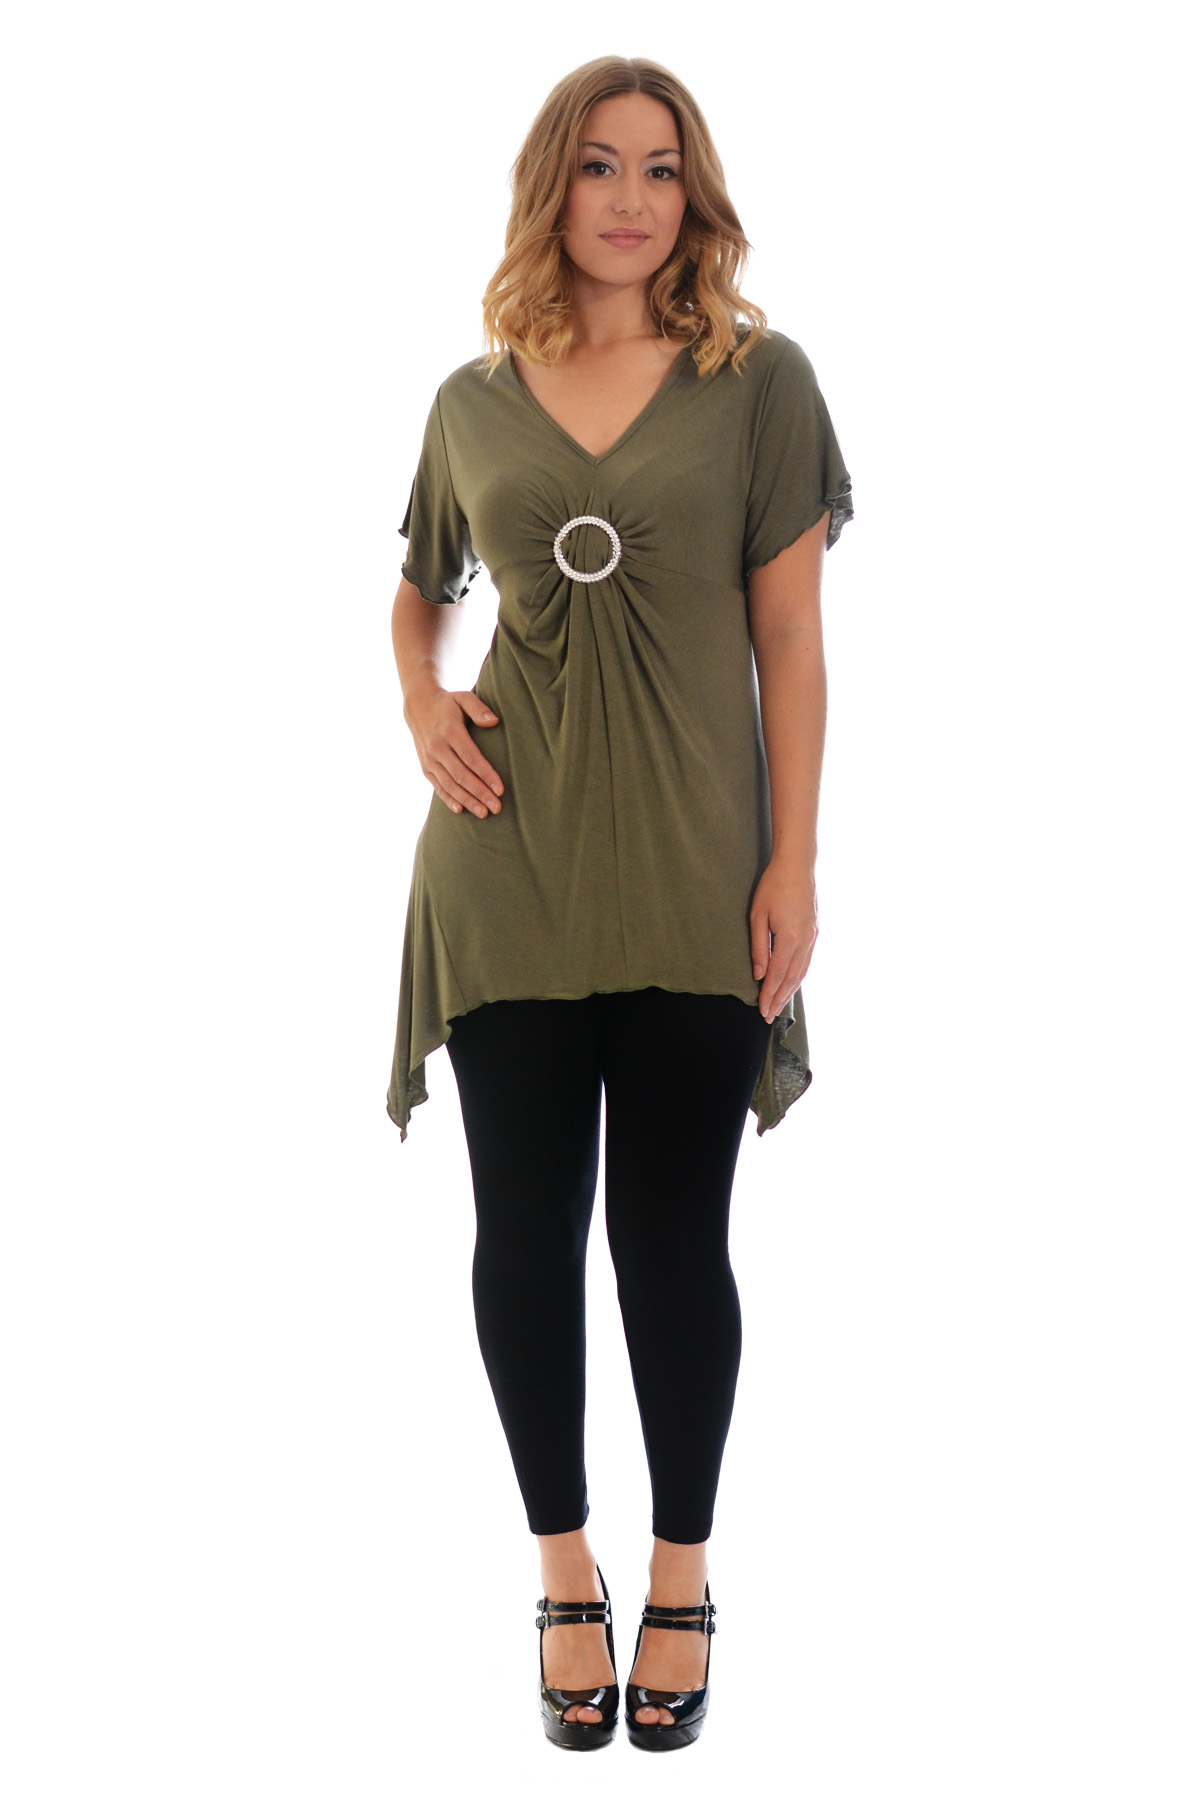 New-Womens-Plus-Size-Top-Ladies-T-Shirt-Buckle-Stud-A-Line-Asymmetric-Nouvelle thumbnail 40